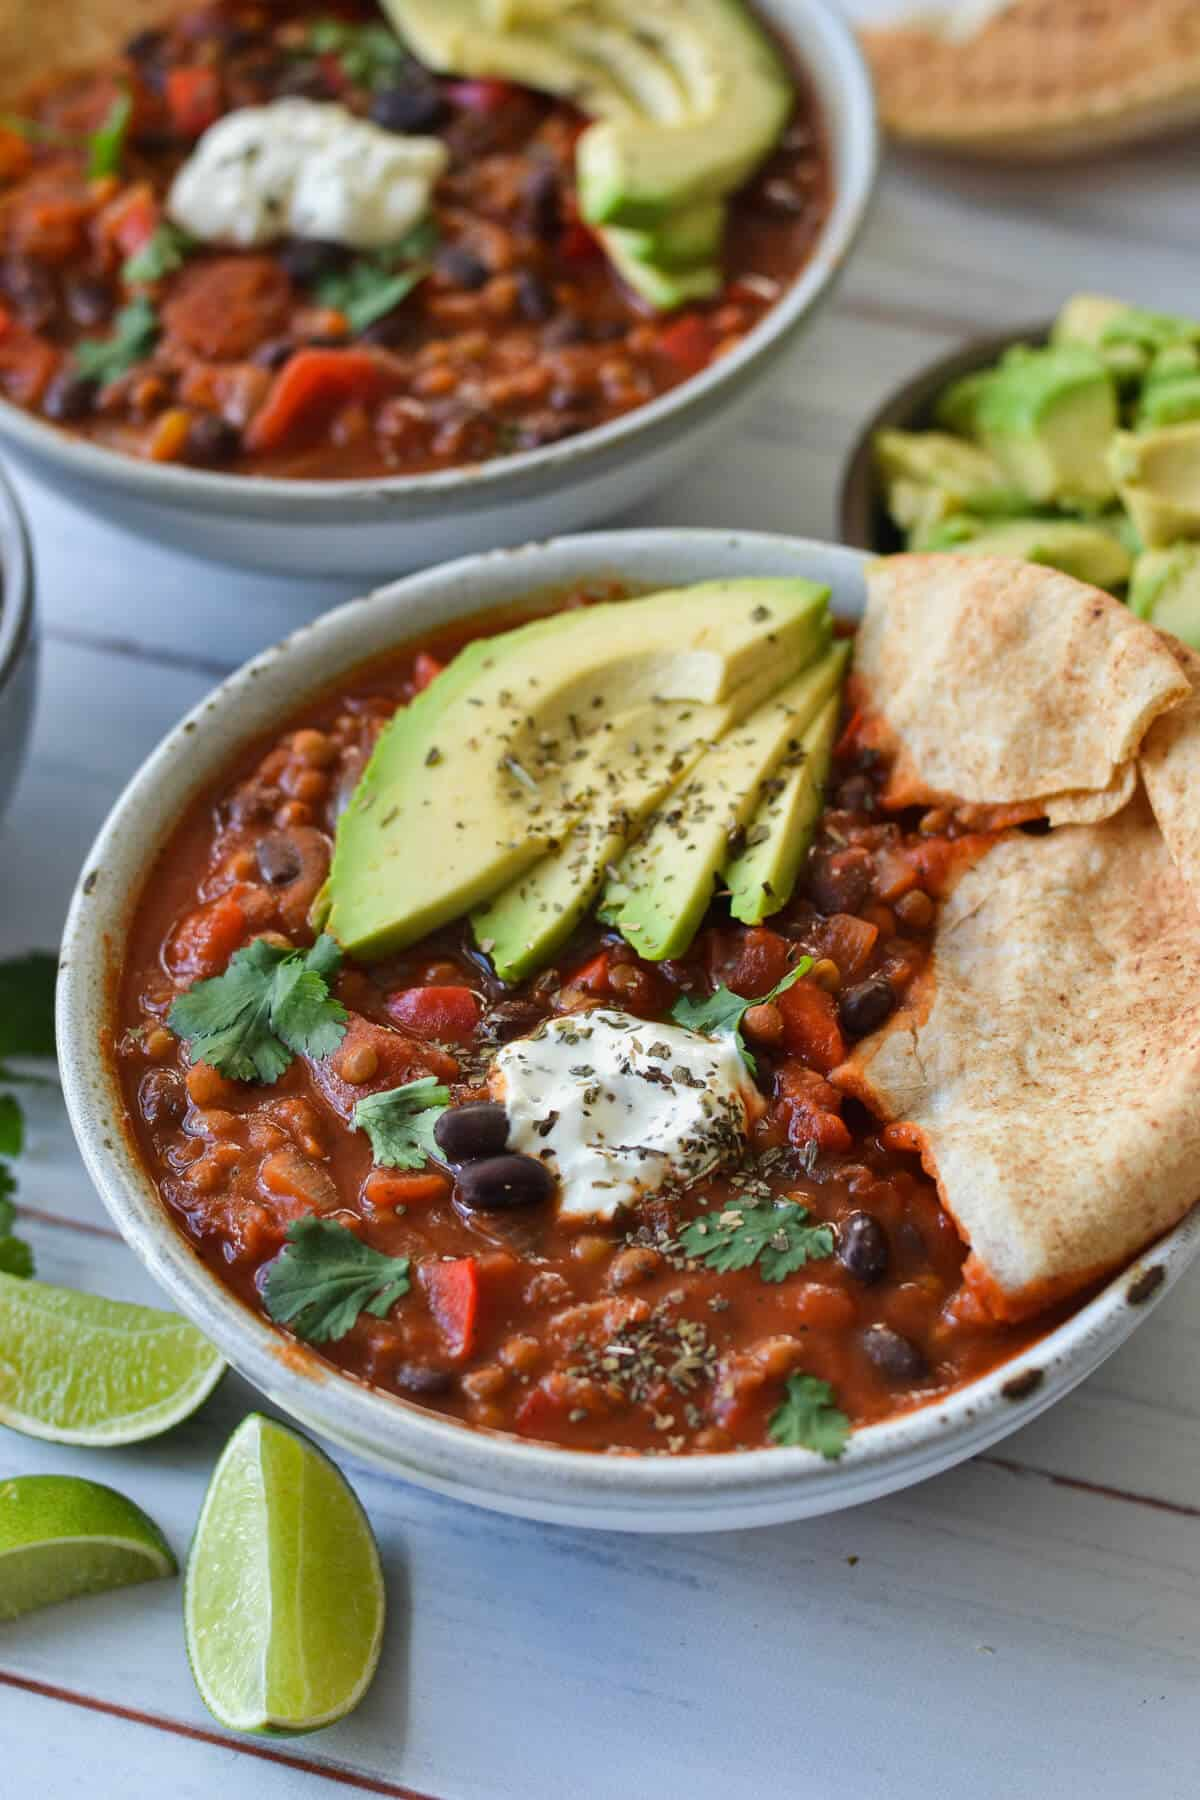 side view of vegetarian chilli in a grey bowl topped with pita bread and avocado.